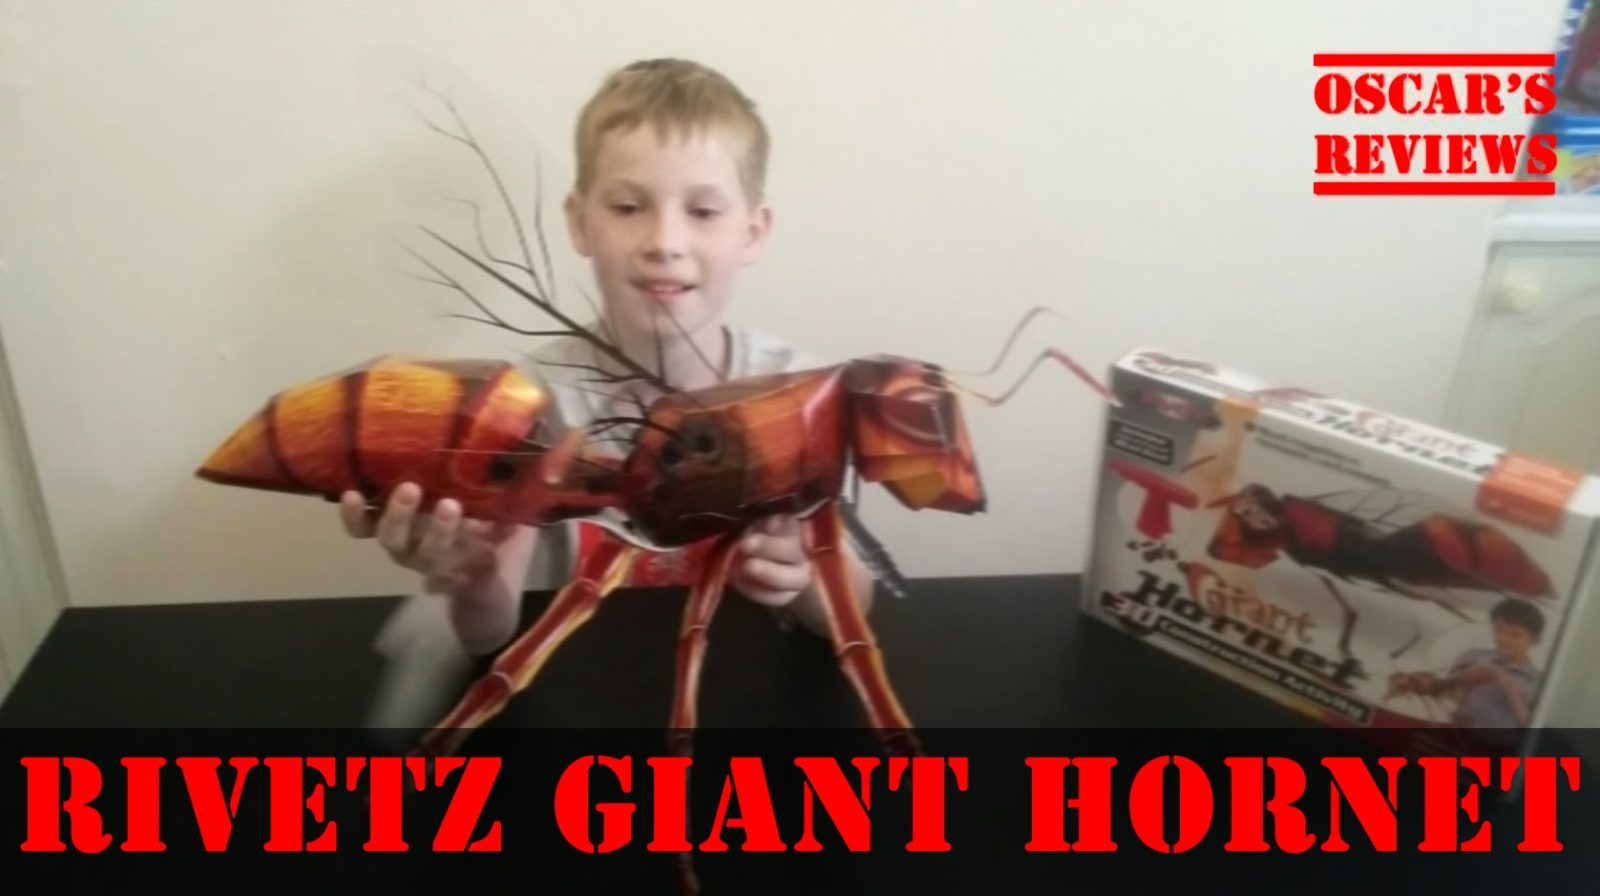 Rivetz Giant Hornet: Hands-On Build and Review of 3D Construction Activity